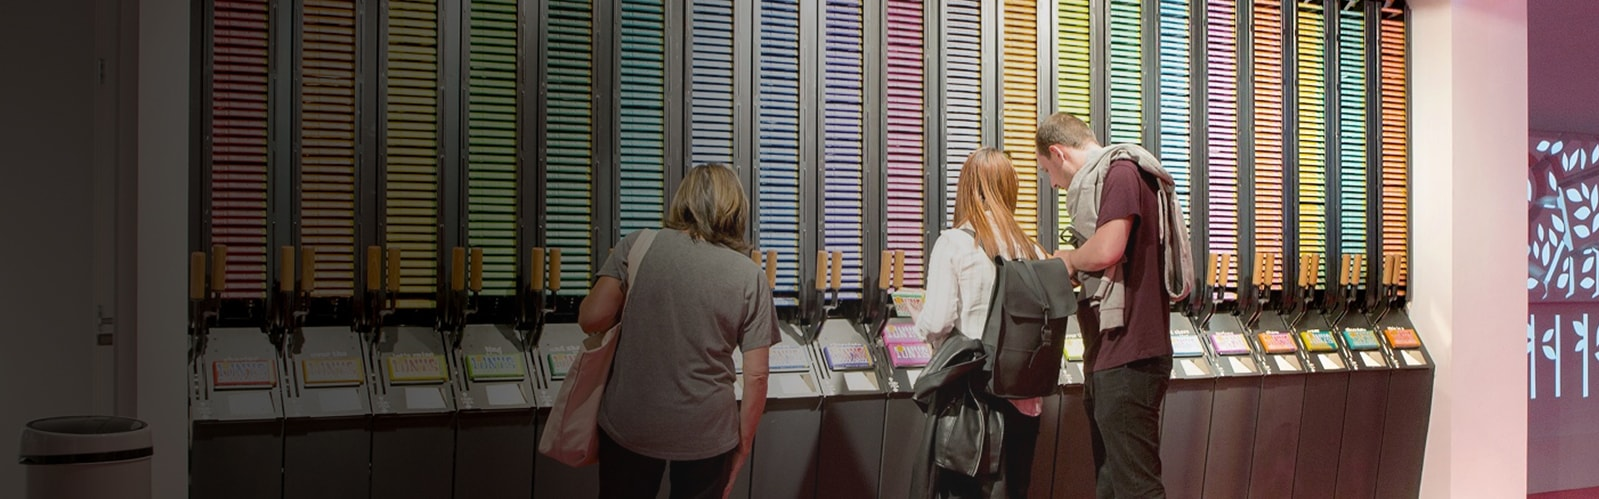 Customers shopping at the colorful Tony's Chocolonely store